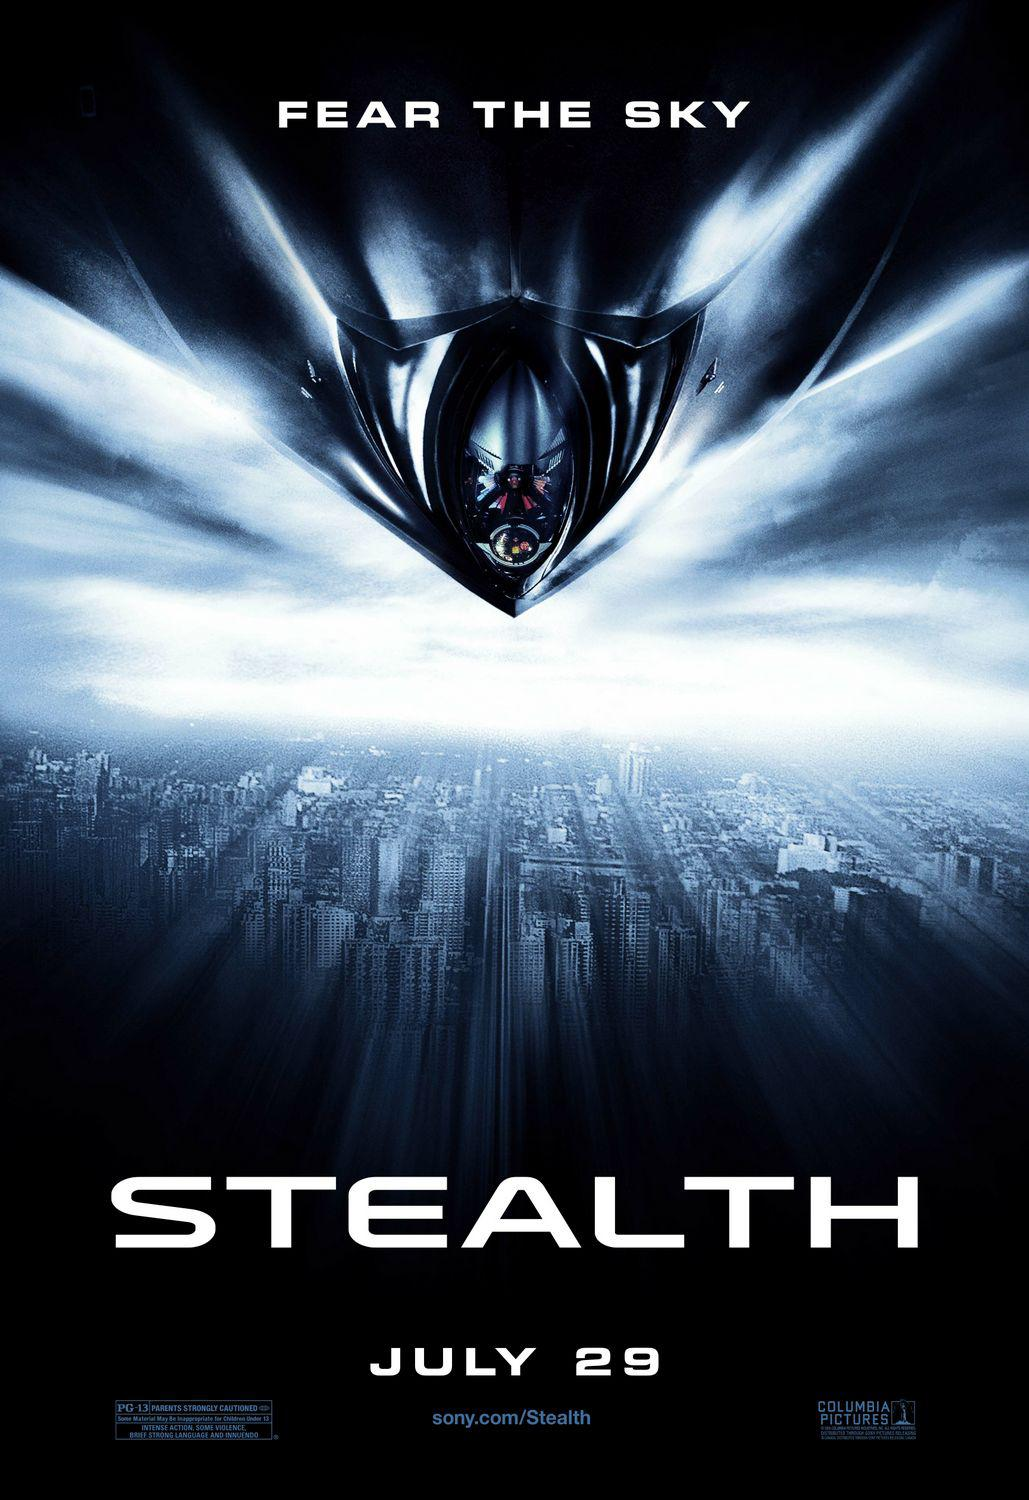 Stealth - poster - fear the sky